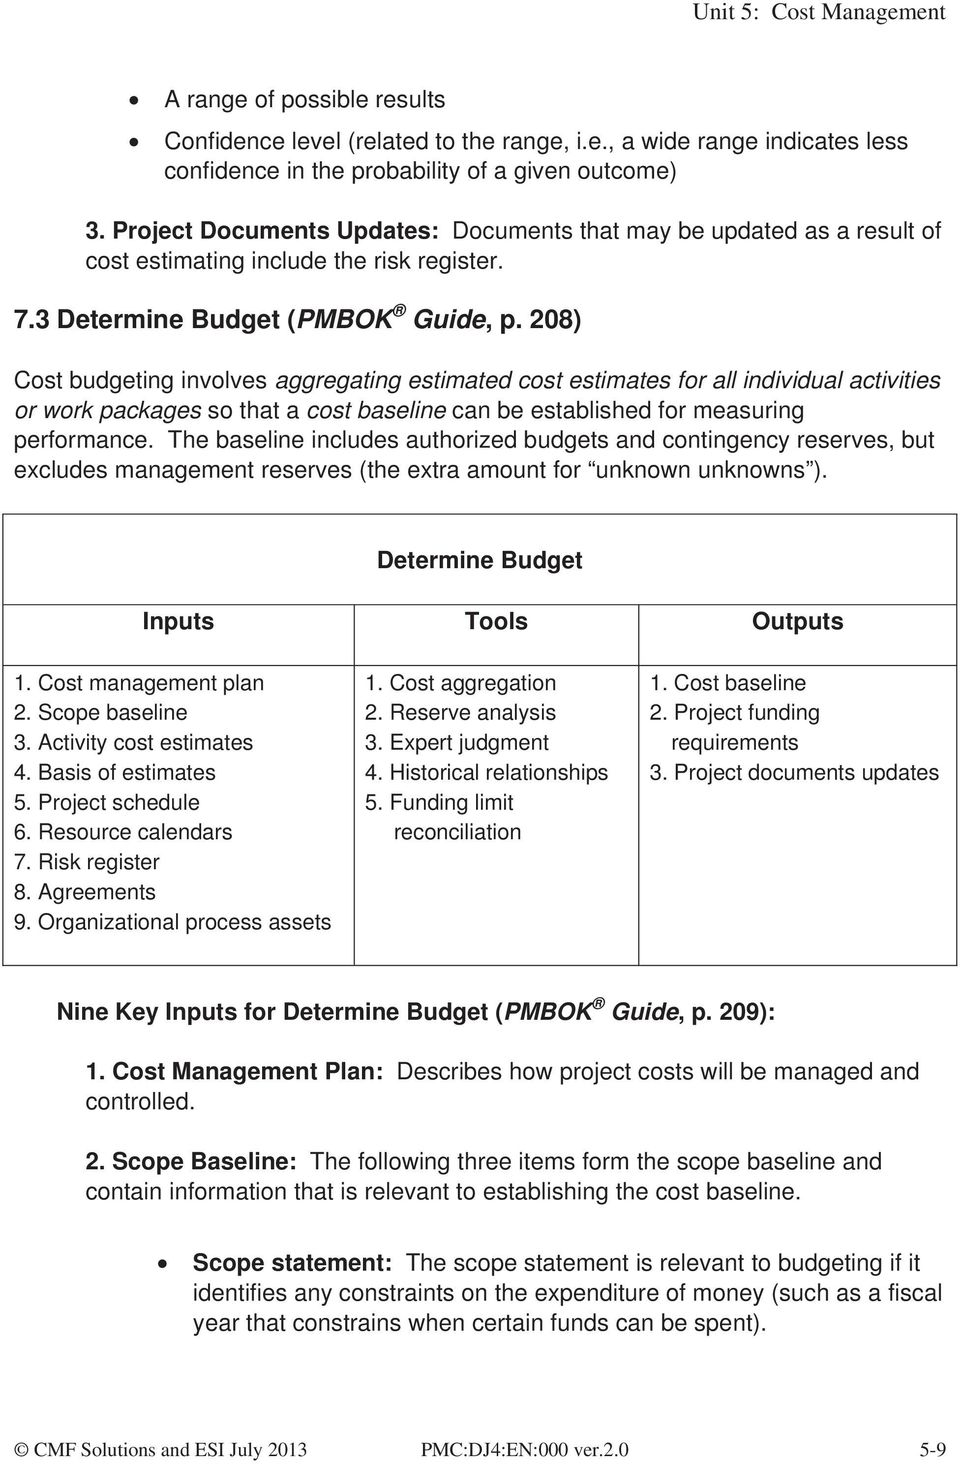 208) Cost budgeting involves aggregating estimated cost estimates for all individual activities or work packages so that a cost baseline can be established for measuring performance.